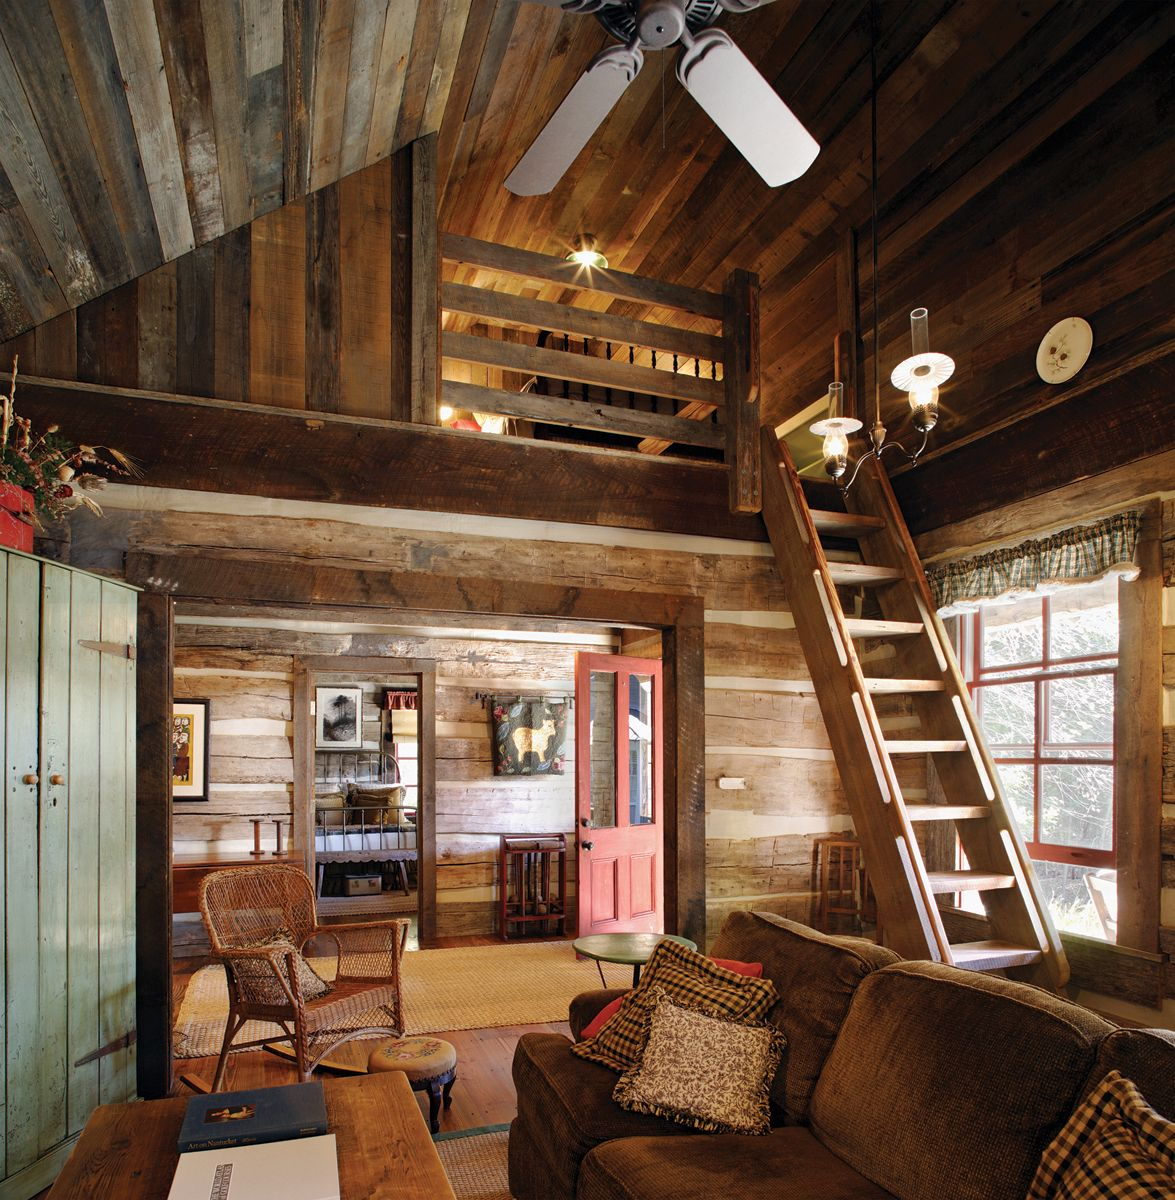 Lakefront Cottage Design Idea Observation Loft: Rustic And Beautiful Home In Spring Island, S.C